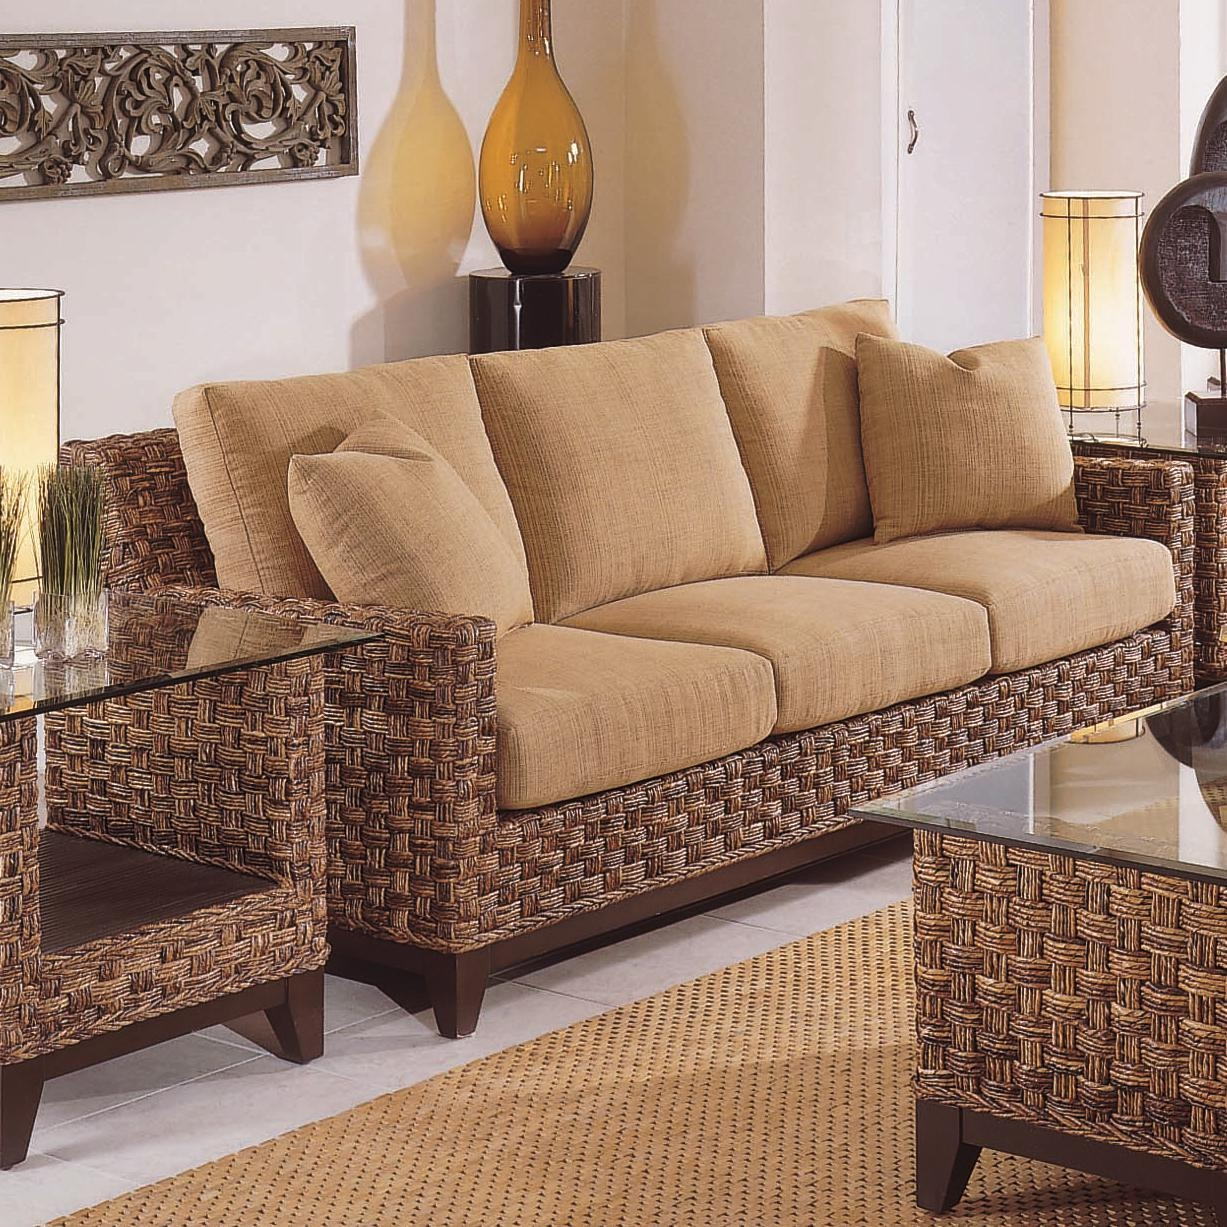 Braxton Culler Tribeca 2960 Modern Wicker Three Seat Queen Sleeper Pertaining To Braxton Culler Sofas (Image 16 of 20)